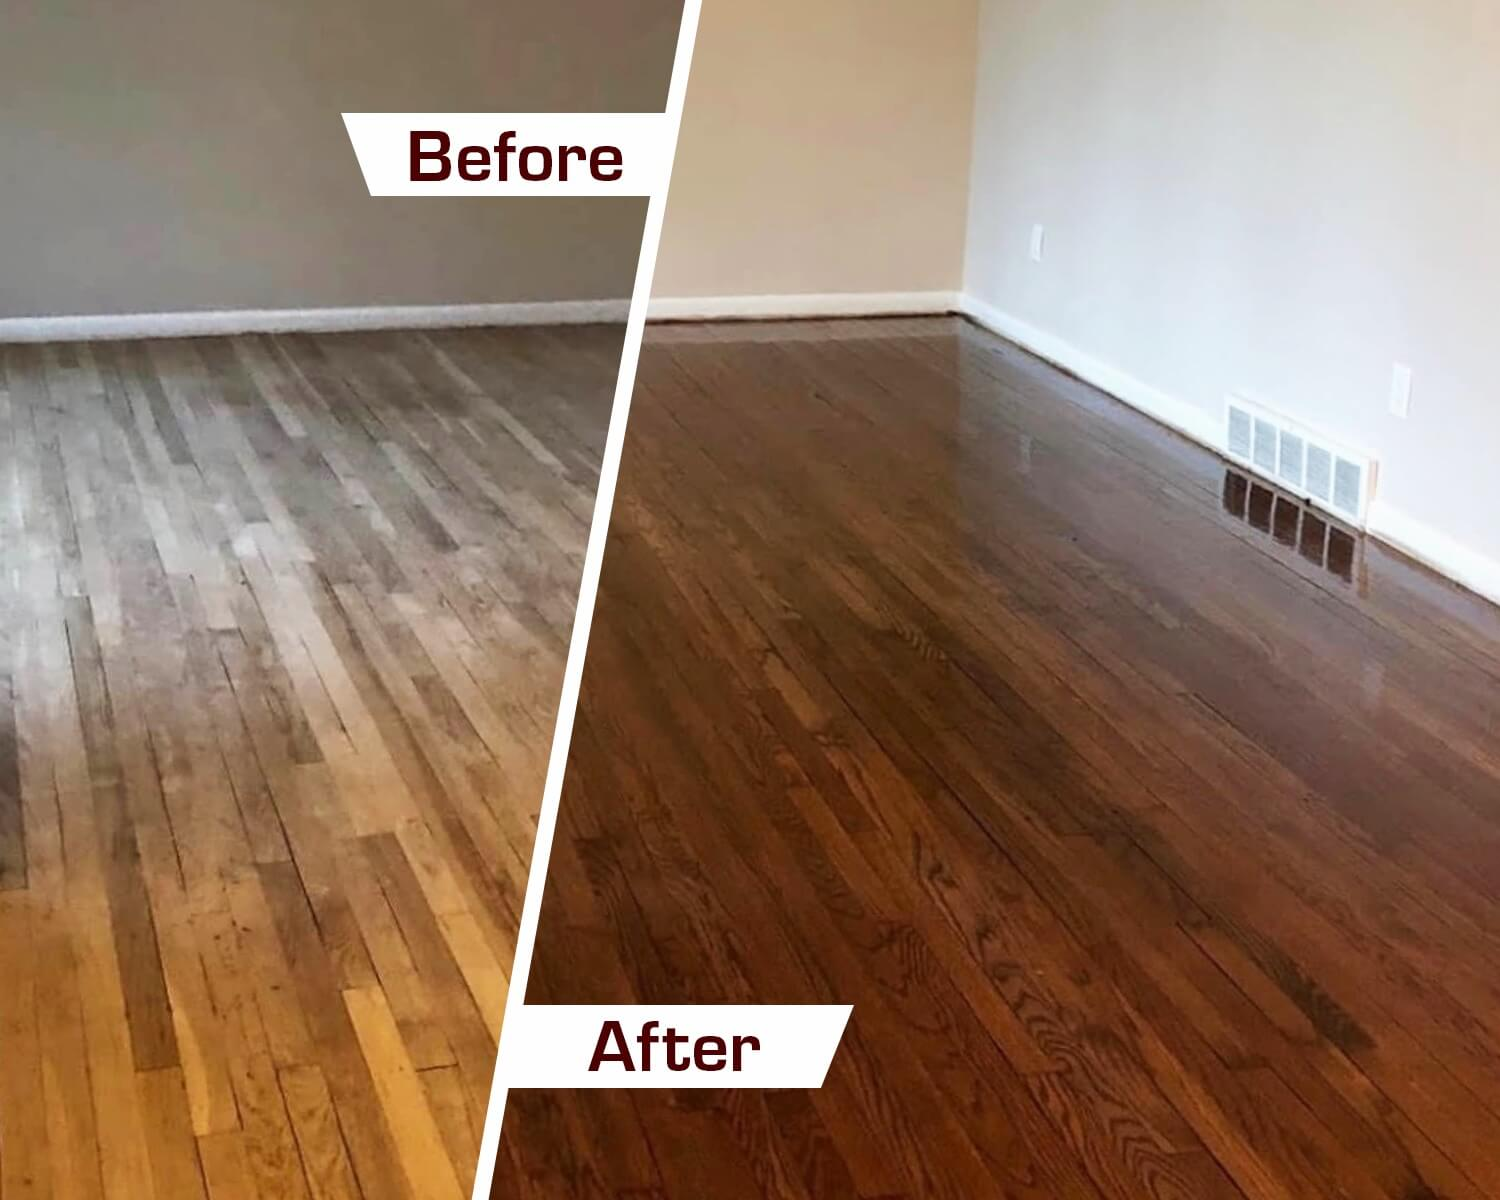 refinish wood flooring in charleston, sc